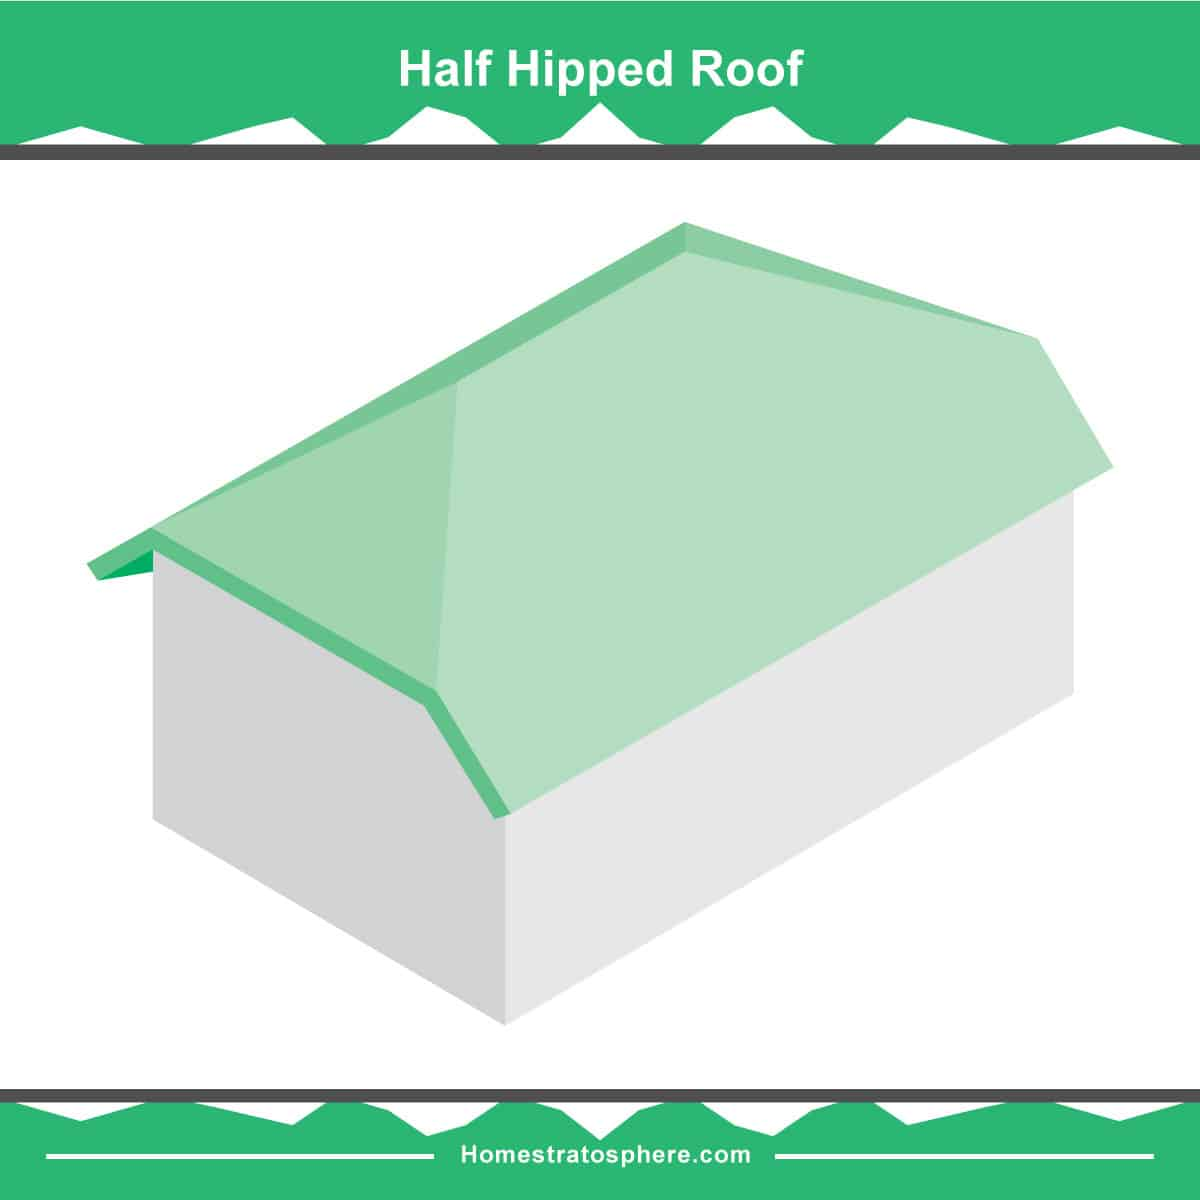 Half-hipped roof diagram